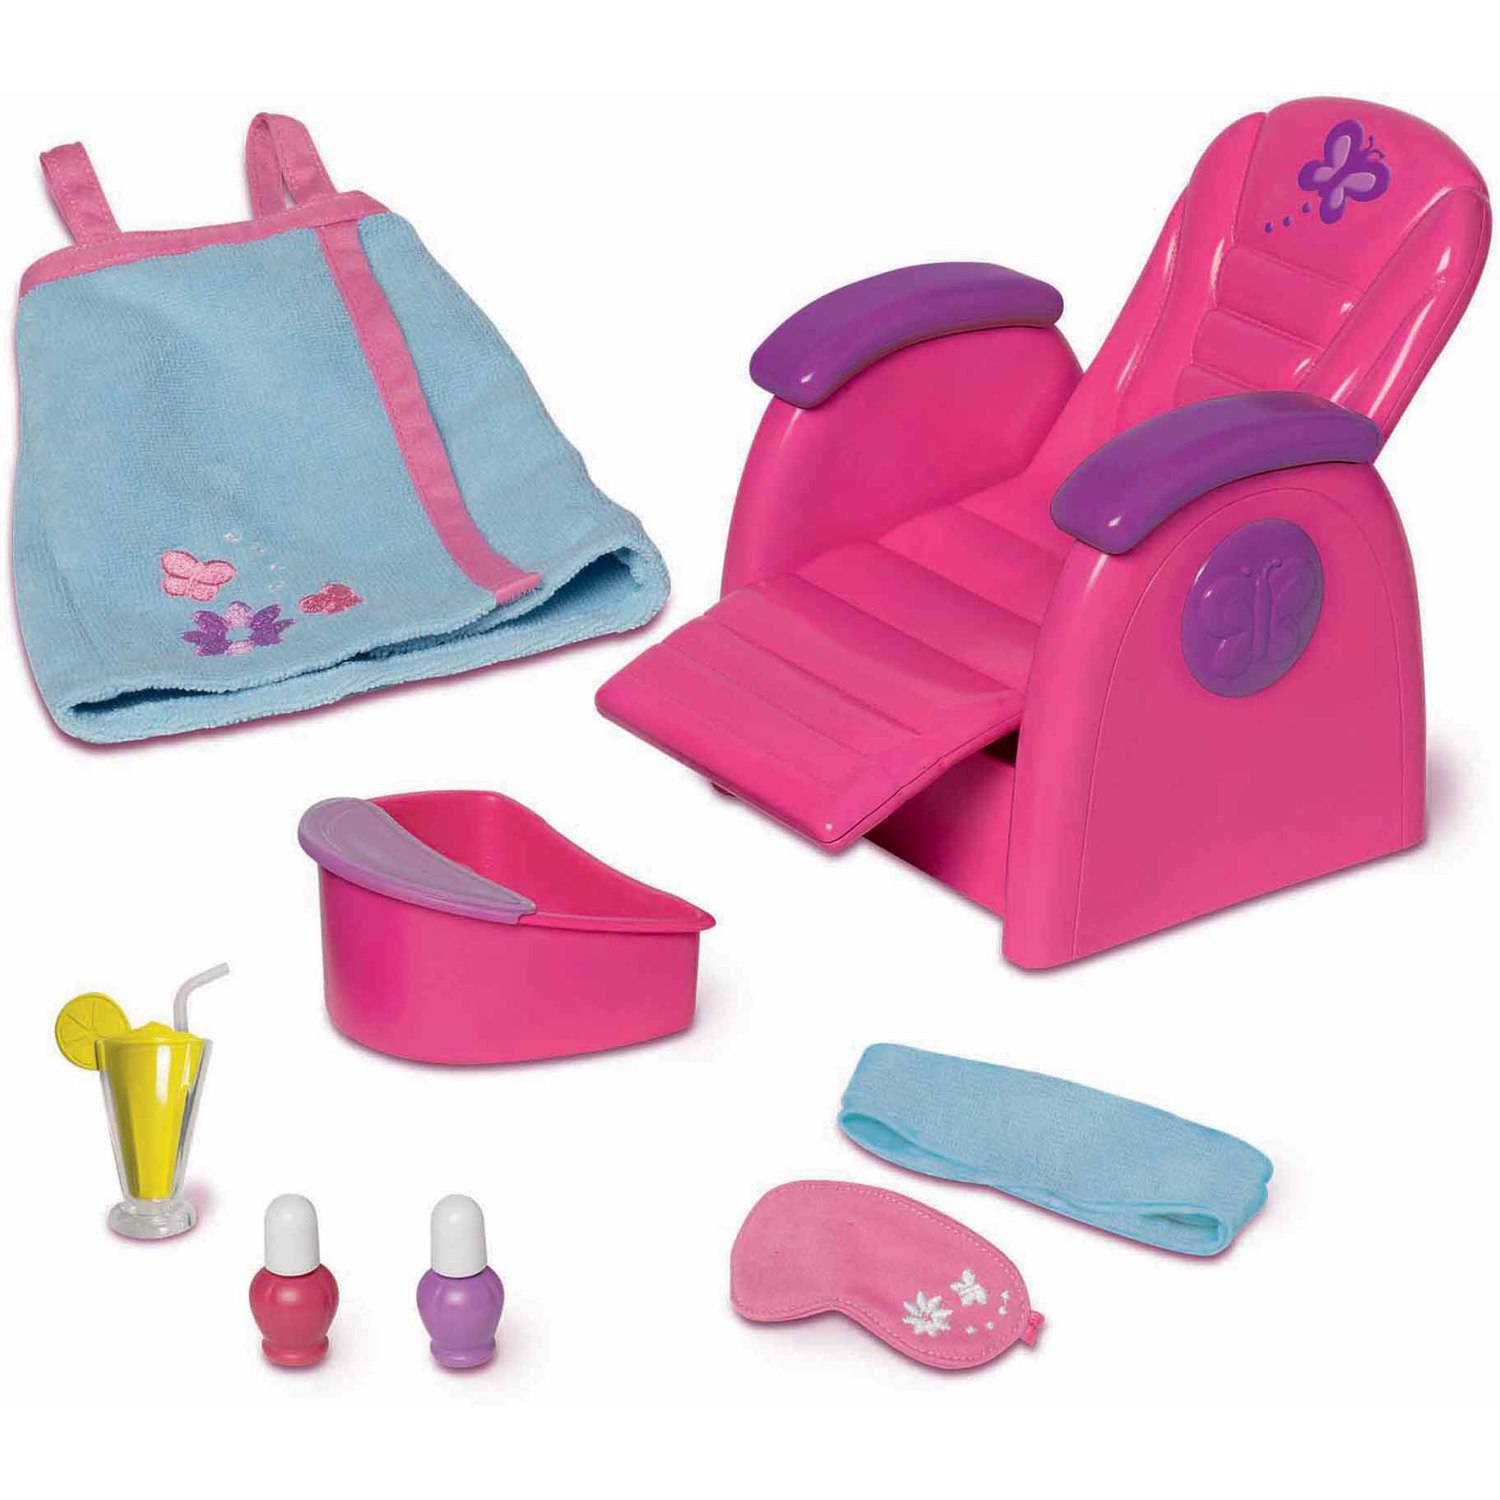 doll salon chair covers and sashes leeds my life as spa play set furniture facial bath